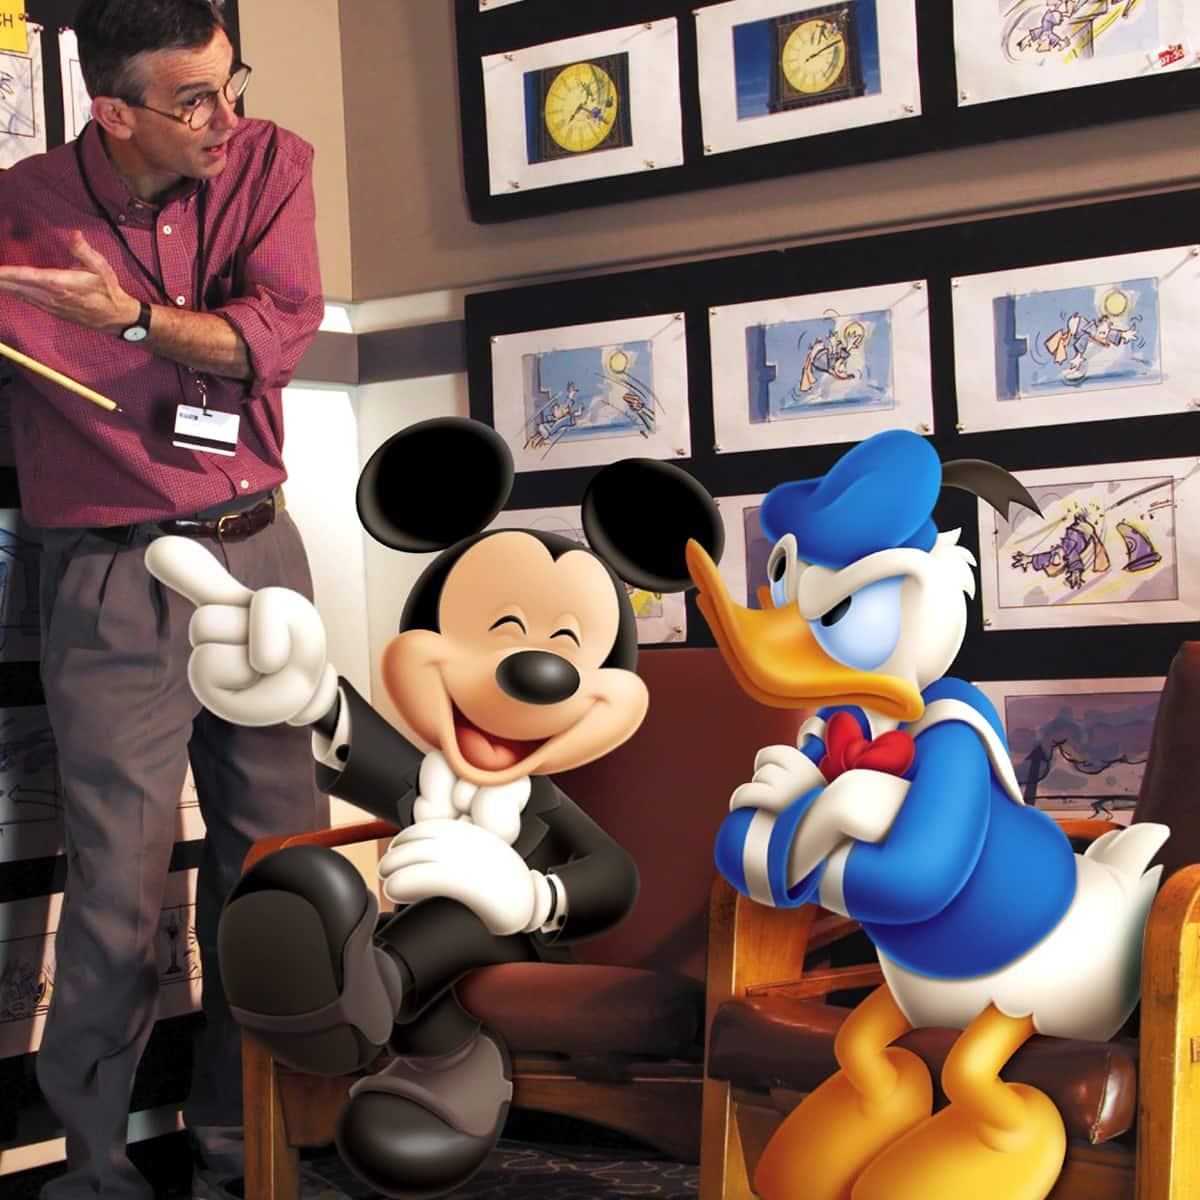 A Cast Member with a pointer shows an animated Mickey Mouse and Donald Duck a series of story boards